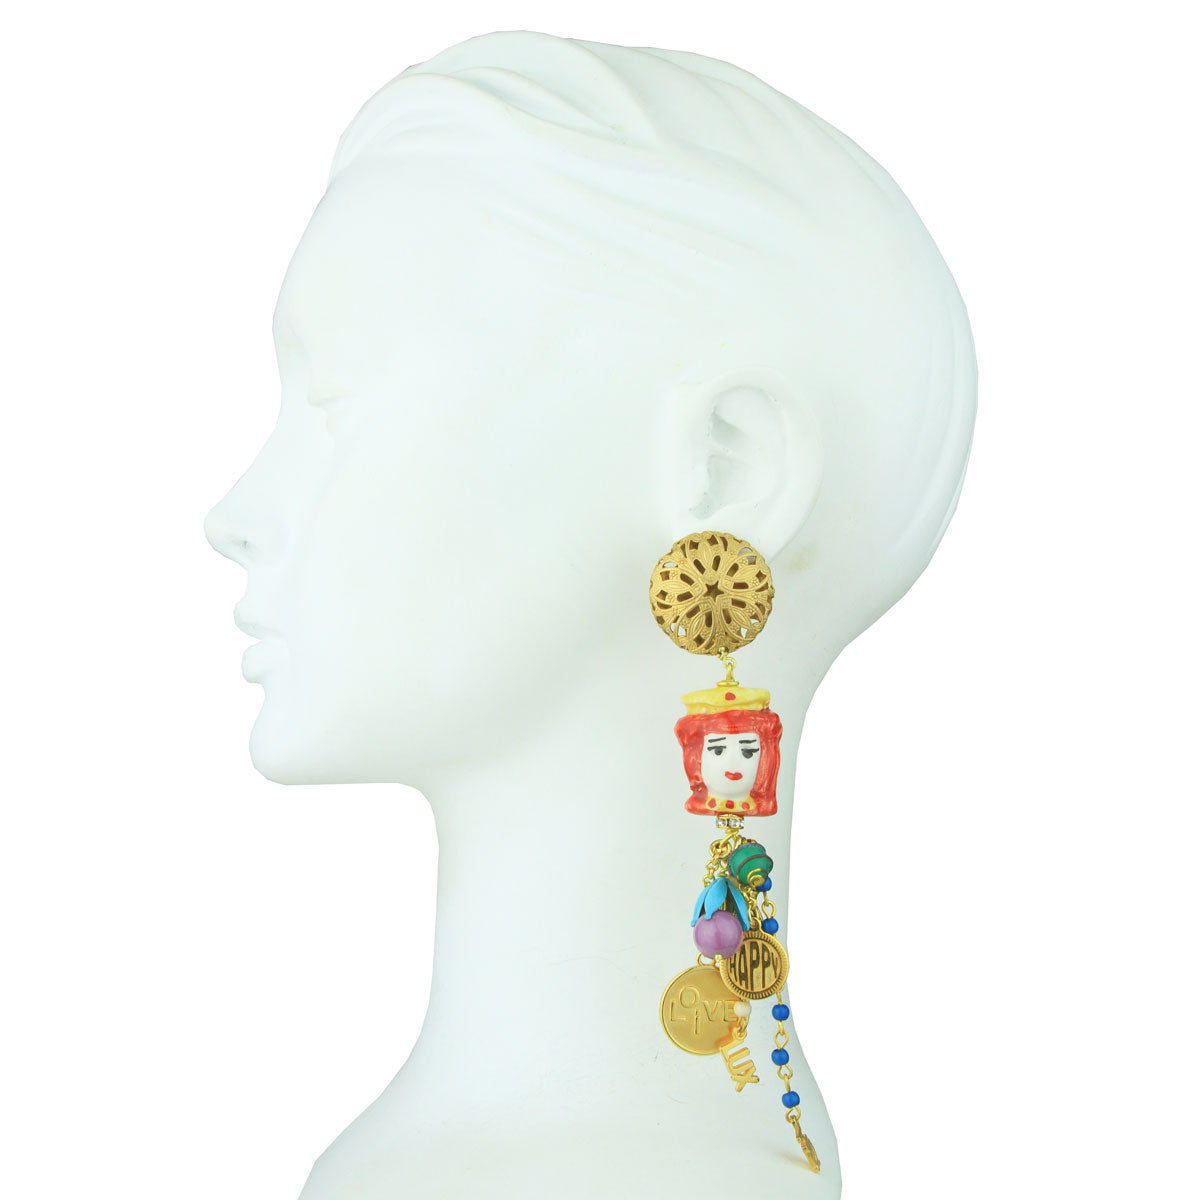 clip dangle earrings with chains, charms and sicilian ceramics